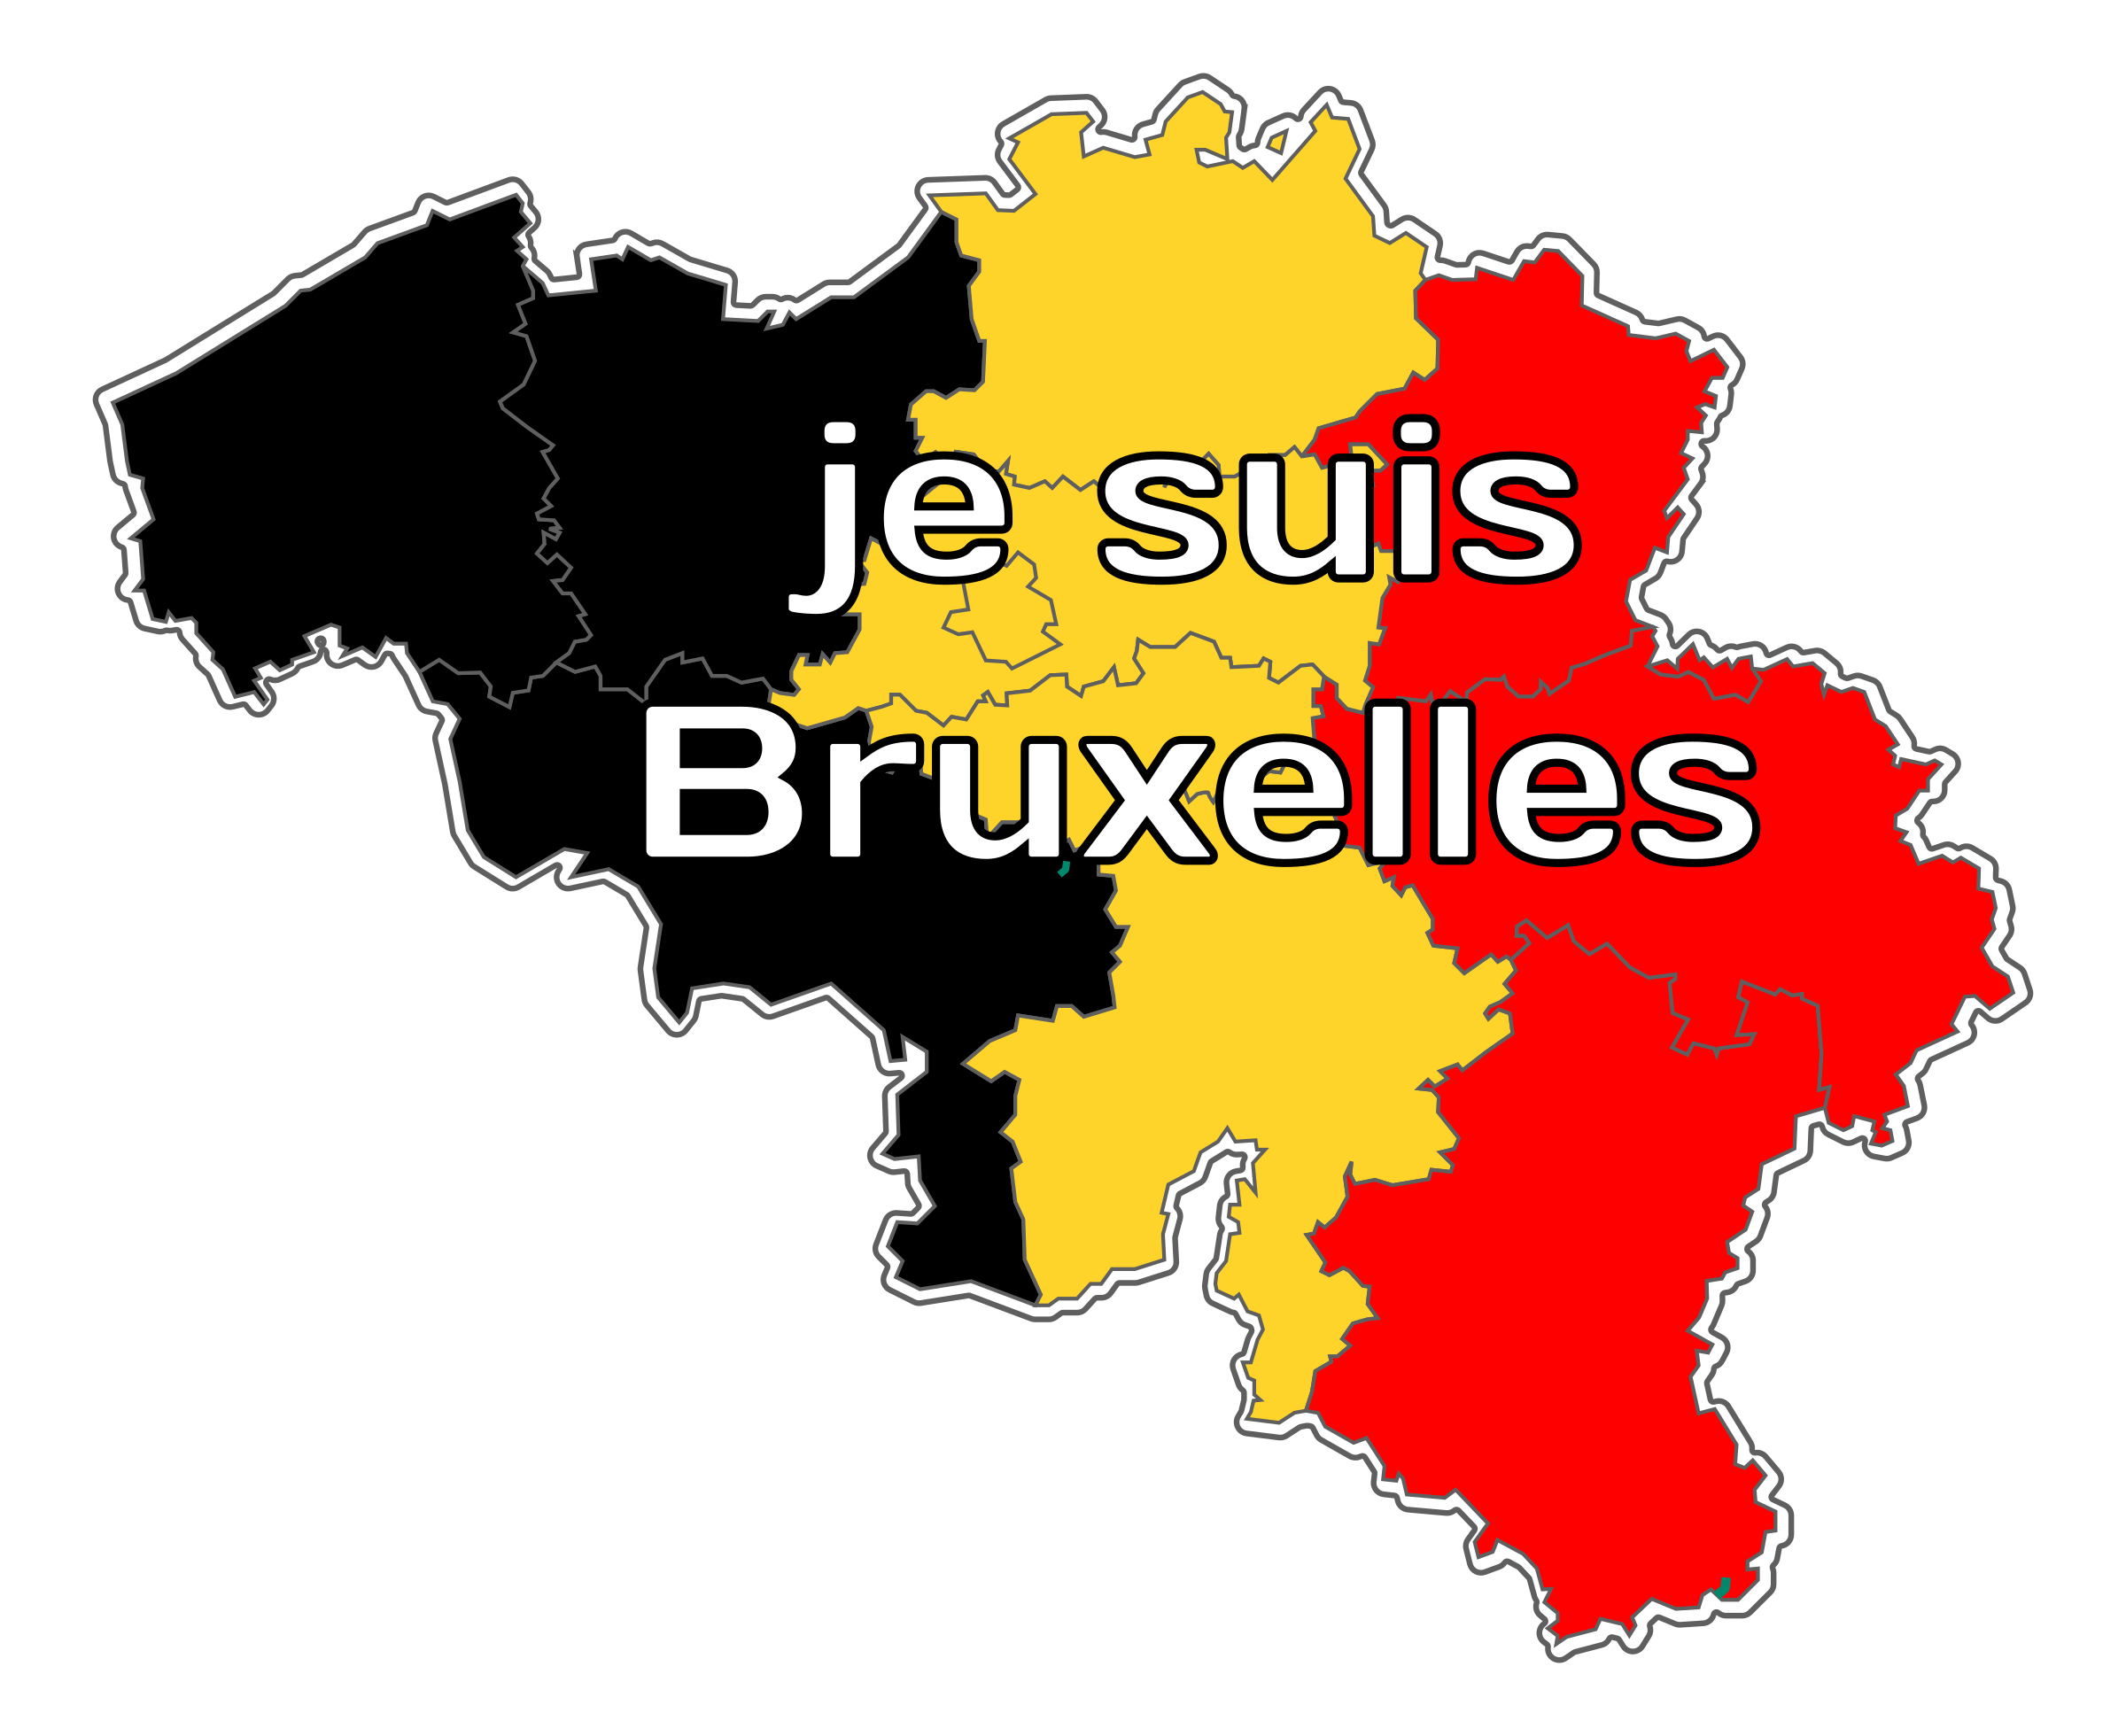 Je suis Bruxelles / I am Brussels by PeterM